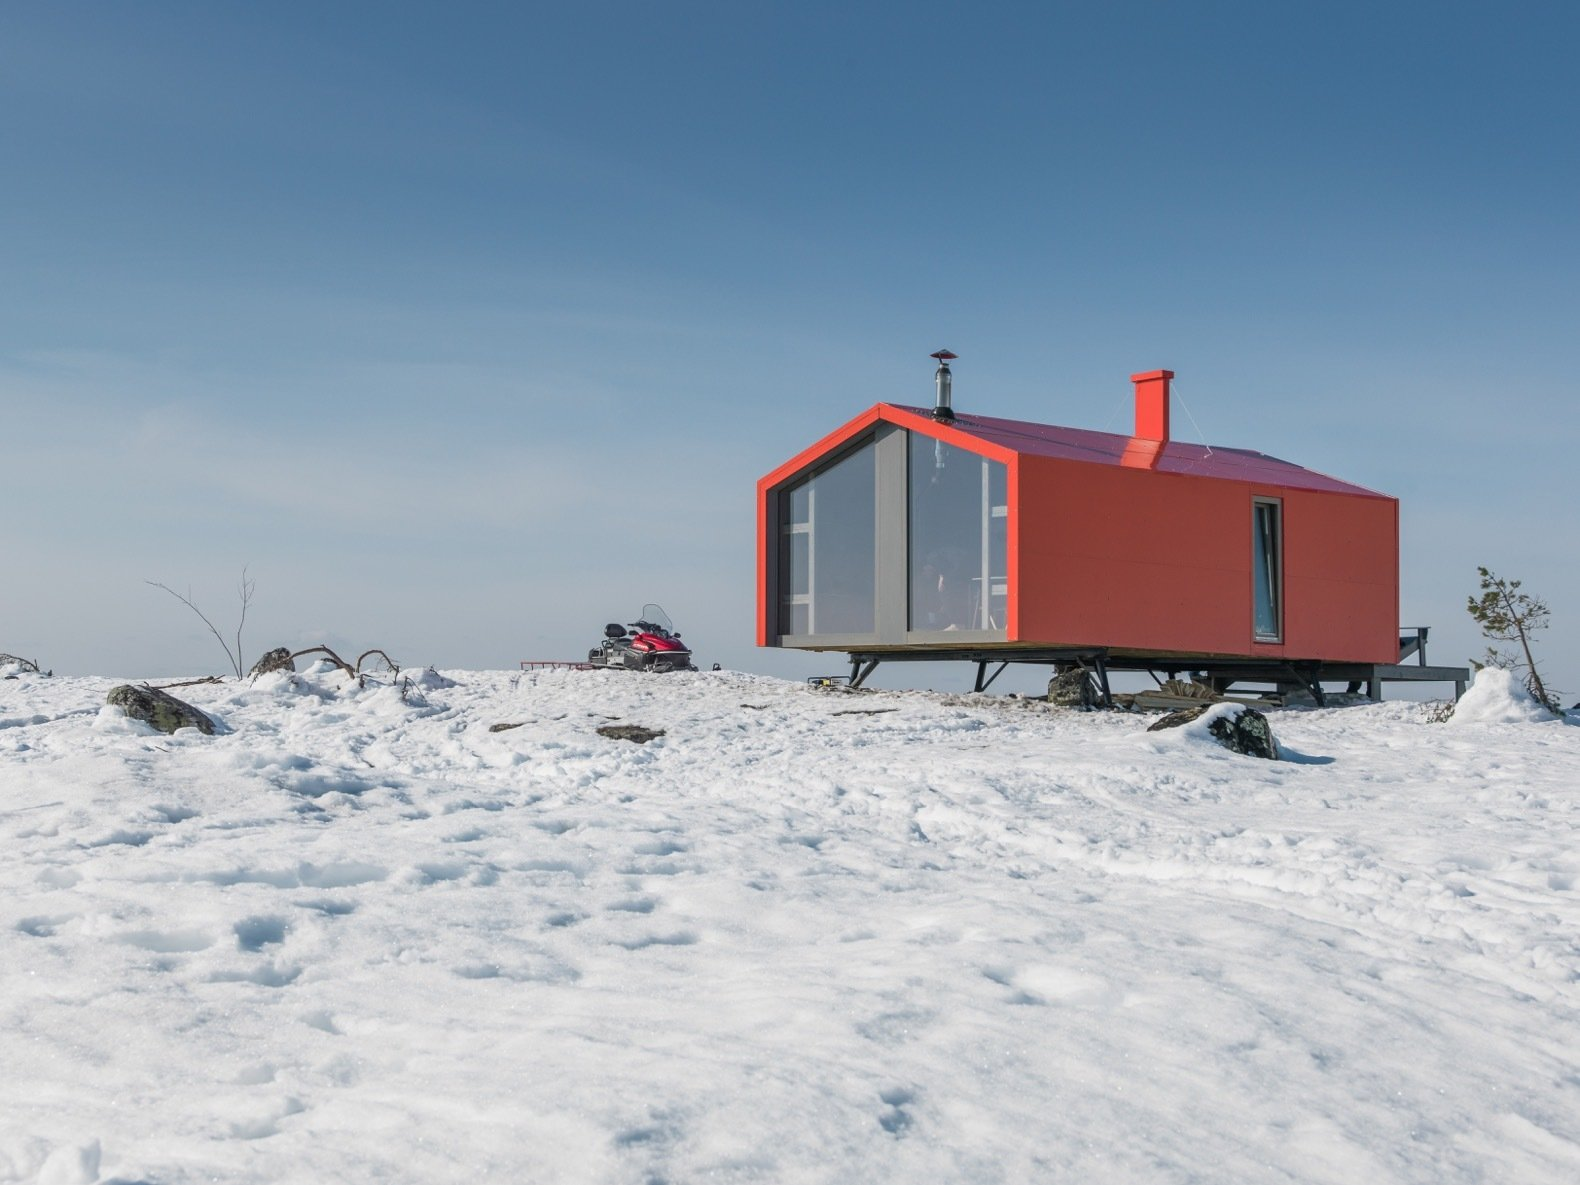 Exterior, Metal Siding Material, Metal Roof Material, Prefab Building Type, Cabin Building Type, Gable RoofLine, and Small Home Building Type The prefab cabin is elevated atop six metal pillars to minimize site impact.   Photo 8 of 22 in Go Off-Grid in Russia With This Bright Red Prefab Cabin